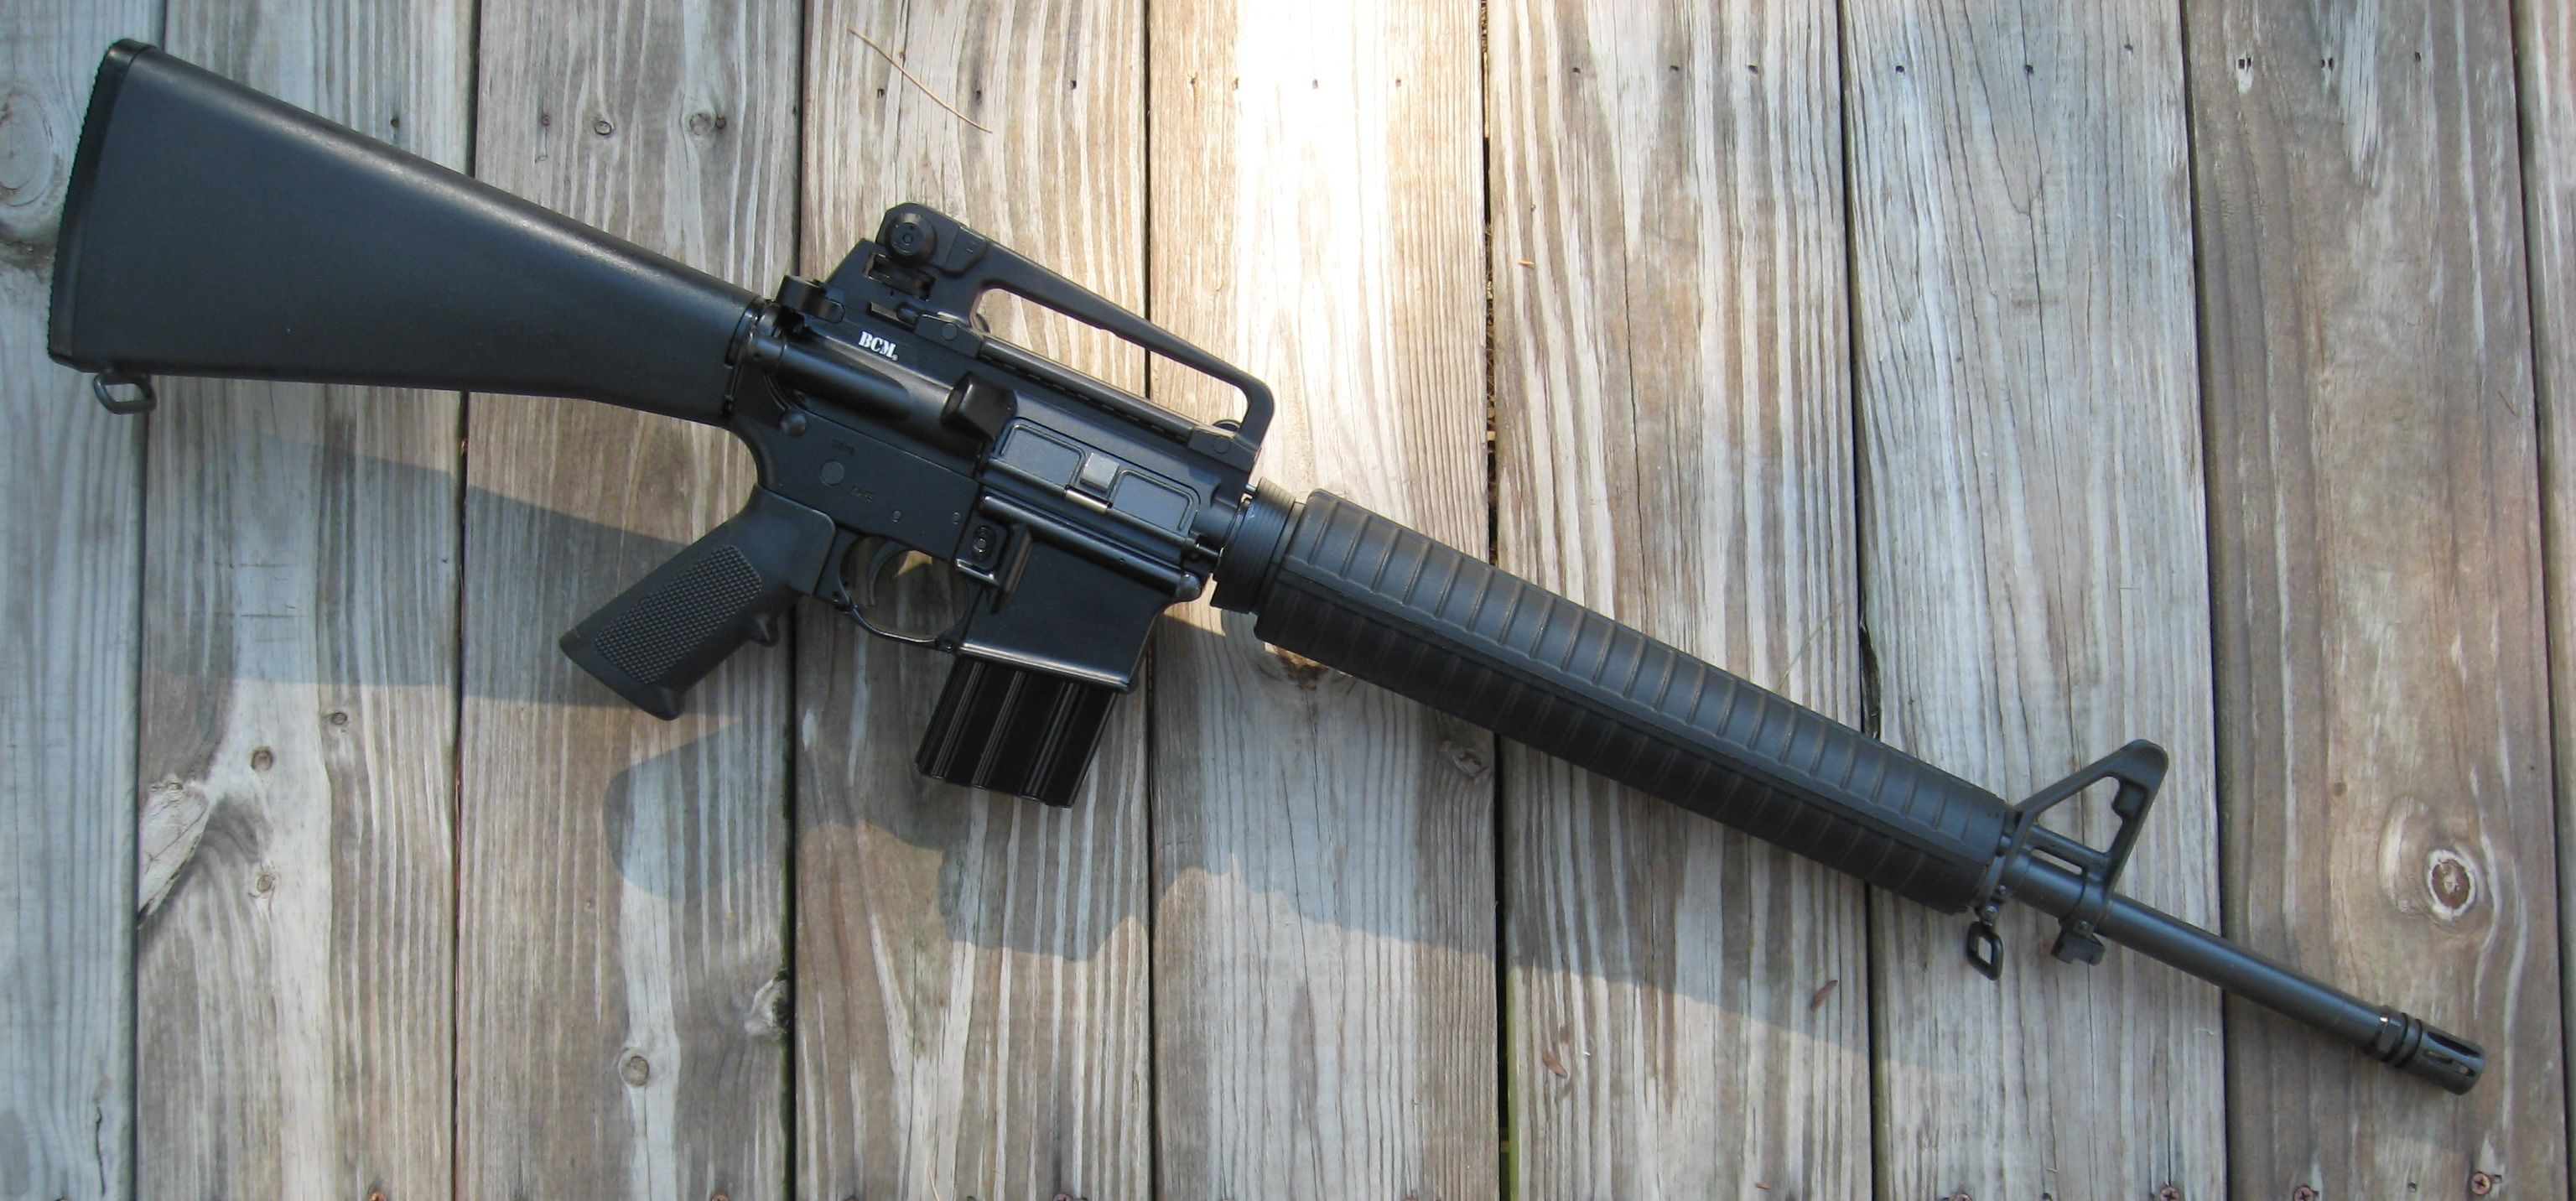 Bcm - AR-15 Discussion